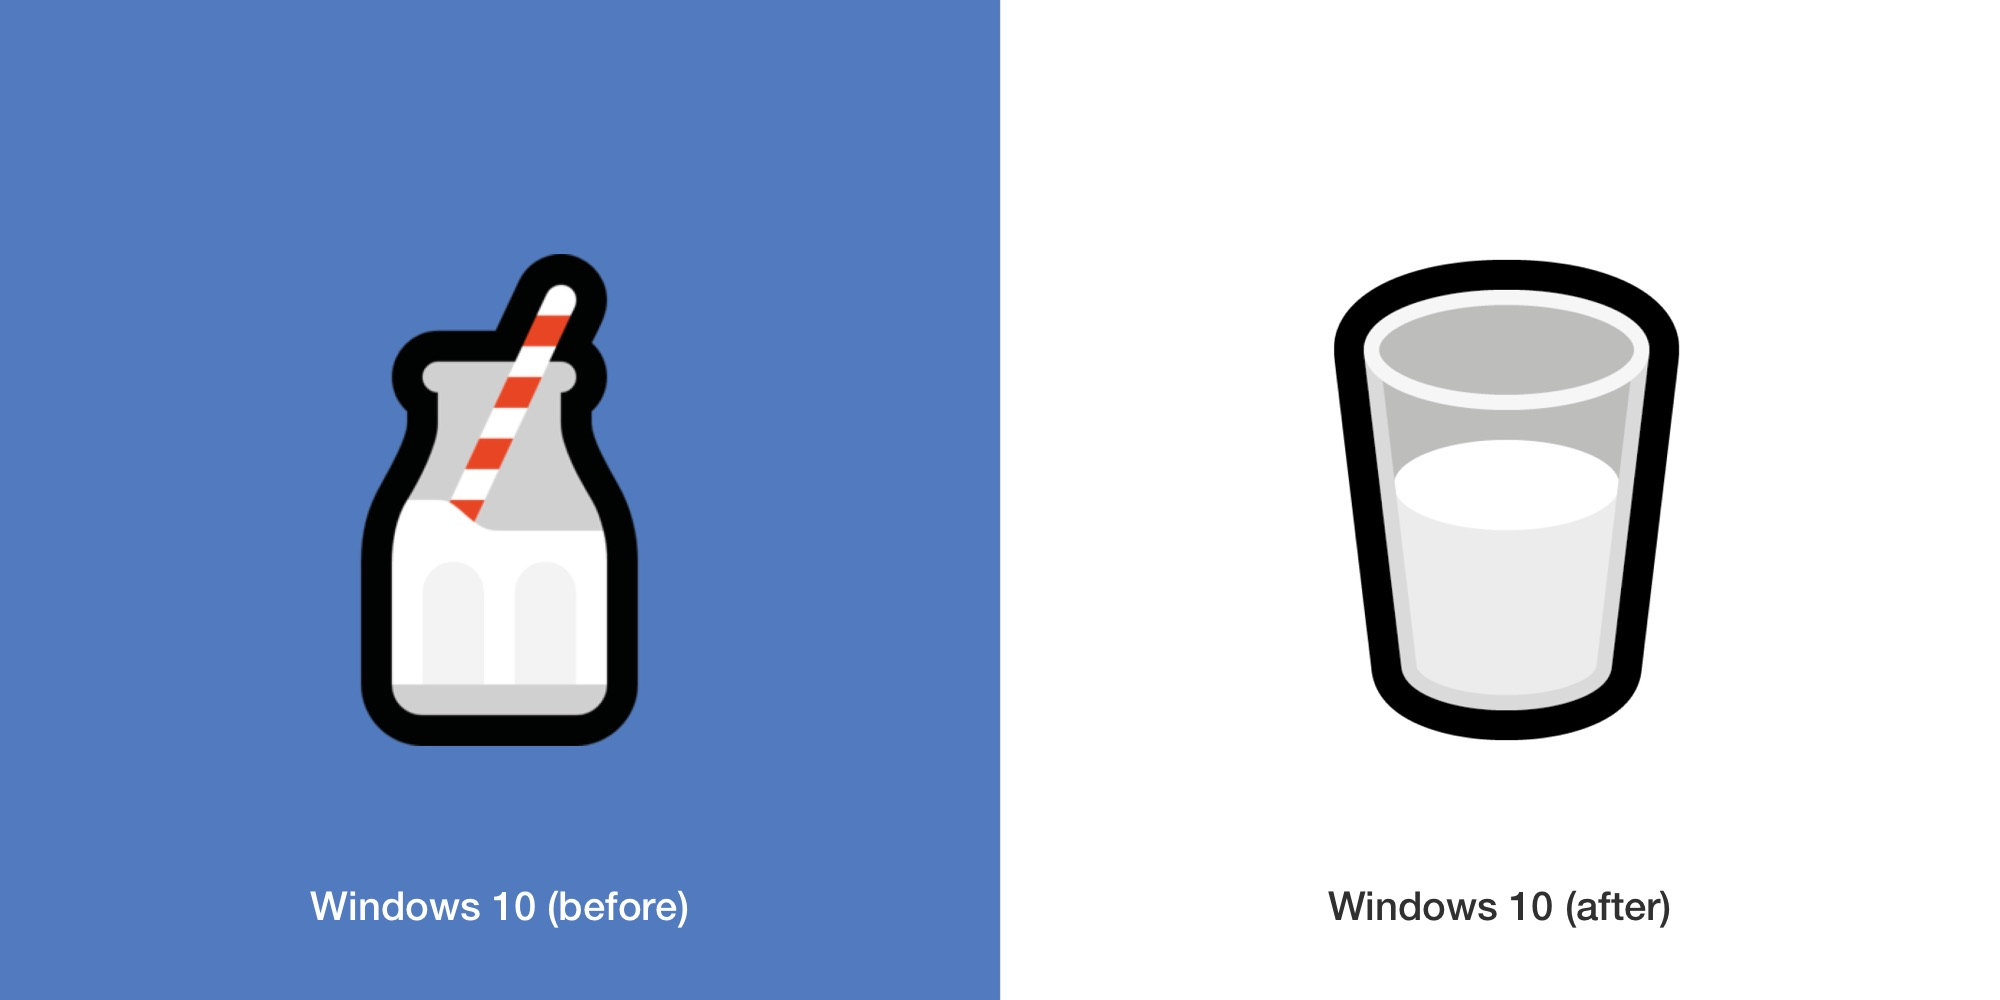 glass-of-milk-emojipedia-windows10-april-2018-emojipedia